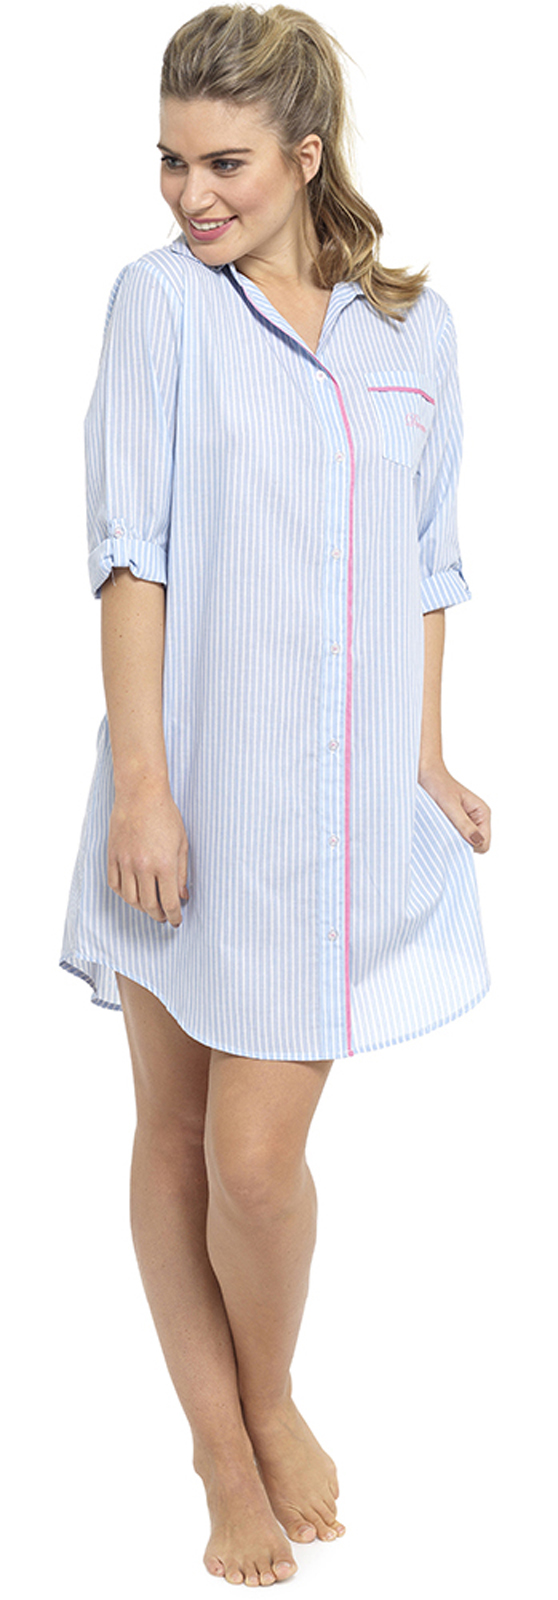 ladies night dress pyjamas - photo #11